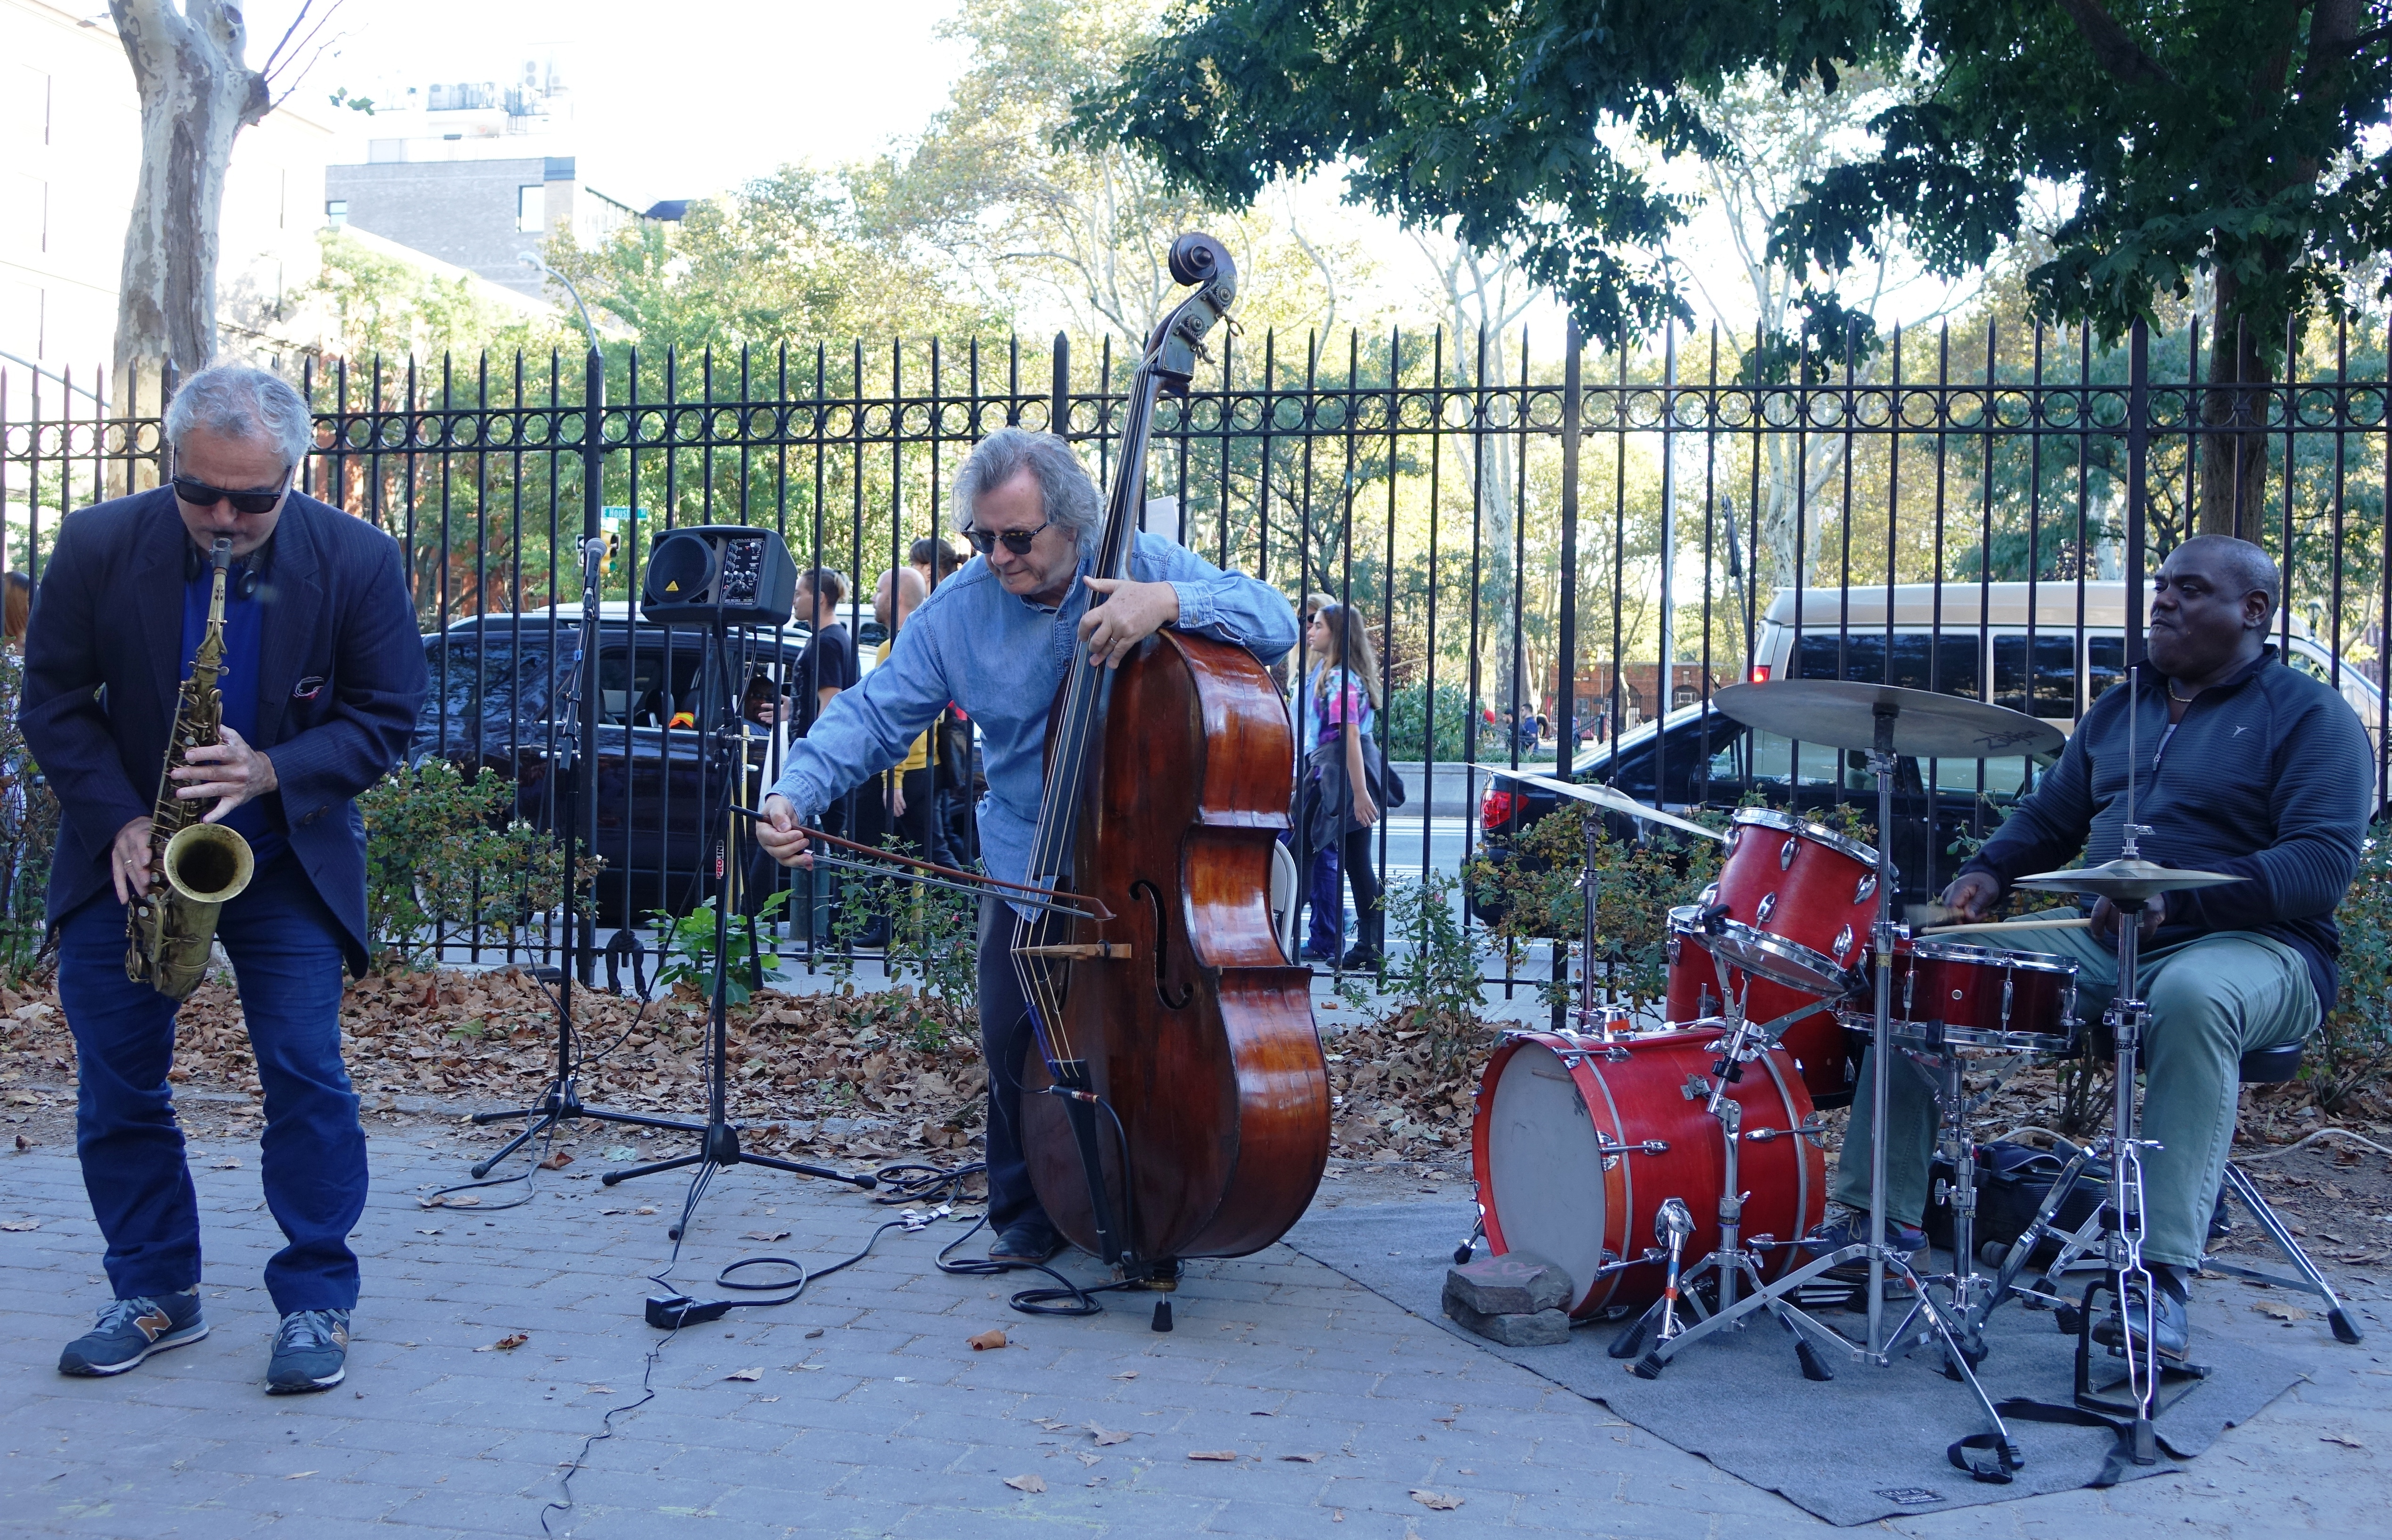 Avram Fefer, Michael Bisio and Michael Wimberly at First Street Green, NYC in October 2017